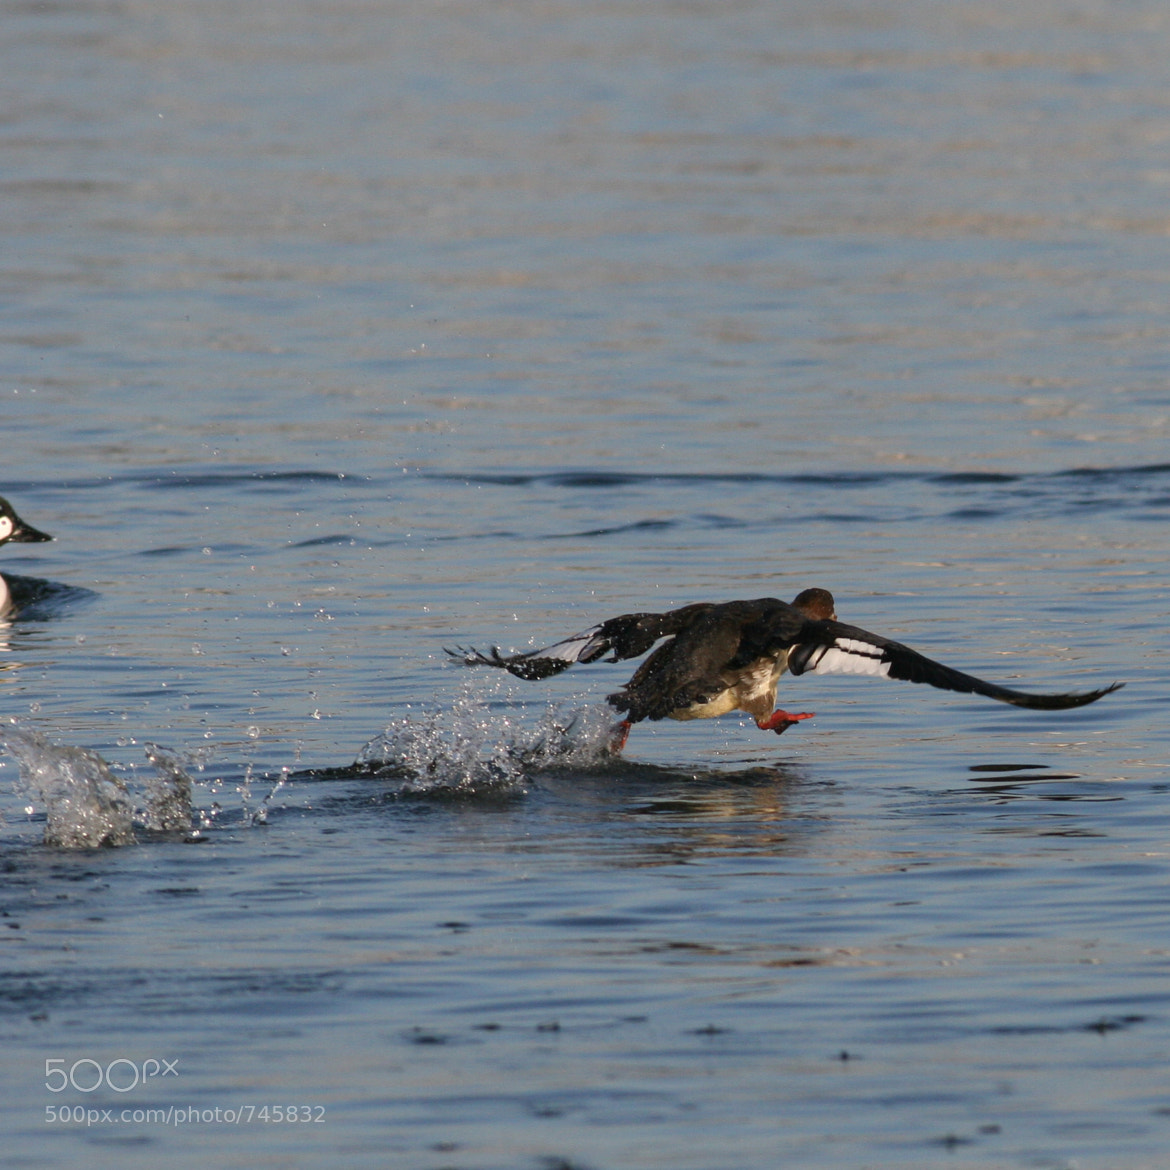 Photograph Duck taking off by Robert Snedegar on 500px